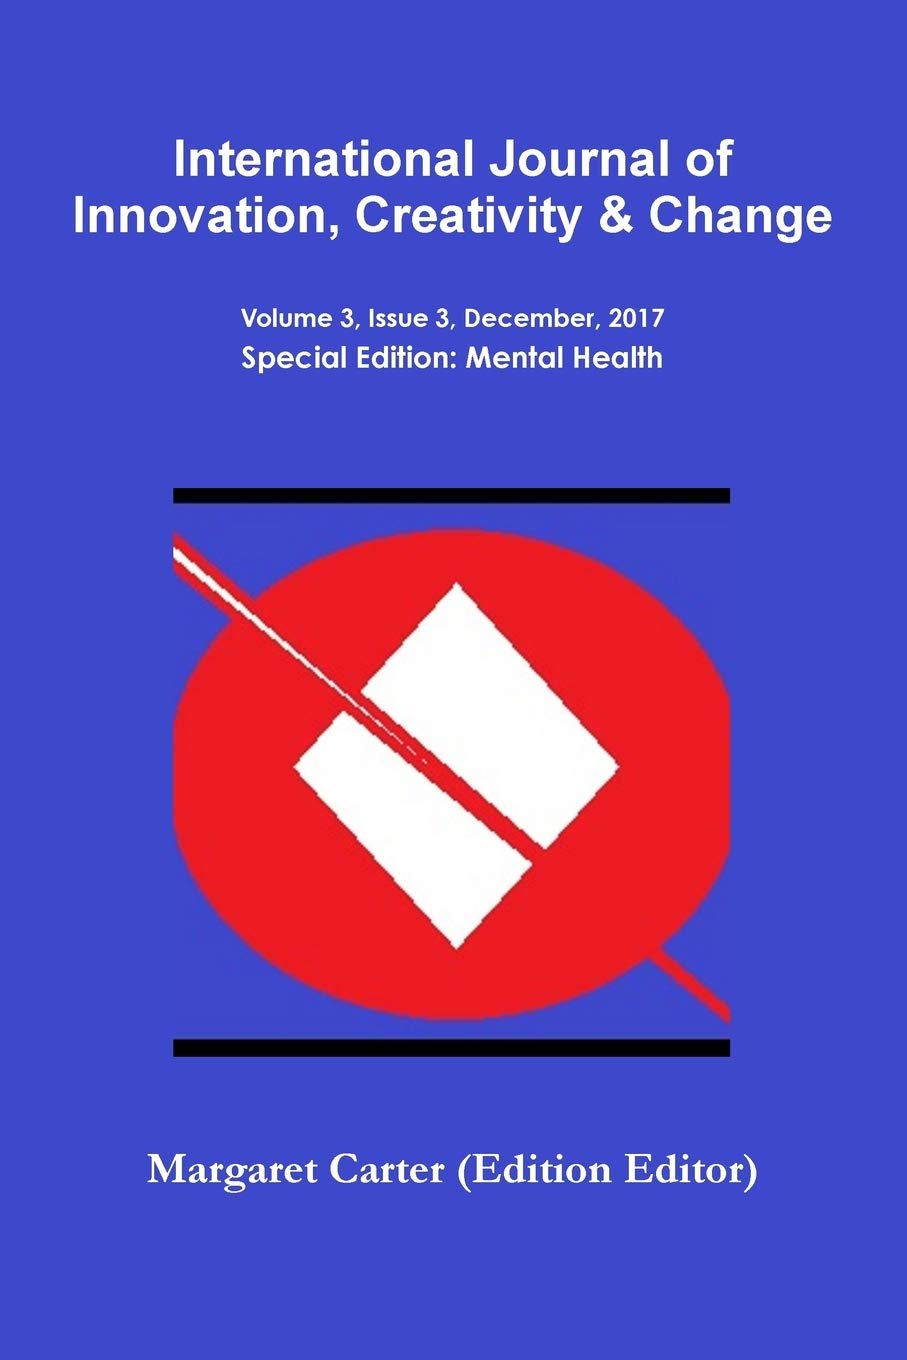 International Journal of Innovation, Creativity and Change Volume 3, Issue  3, December, Special Edition: Mental Health: Carter (Edition Editor),  Margaret: 9780244068097: Amazon.com: Books